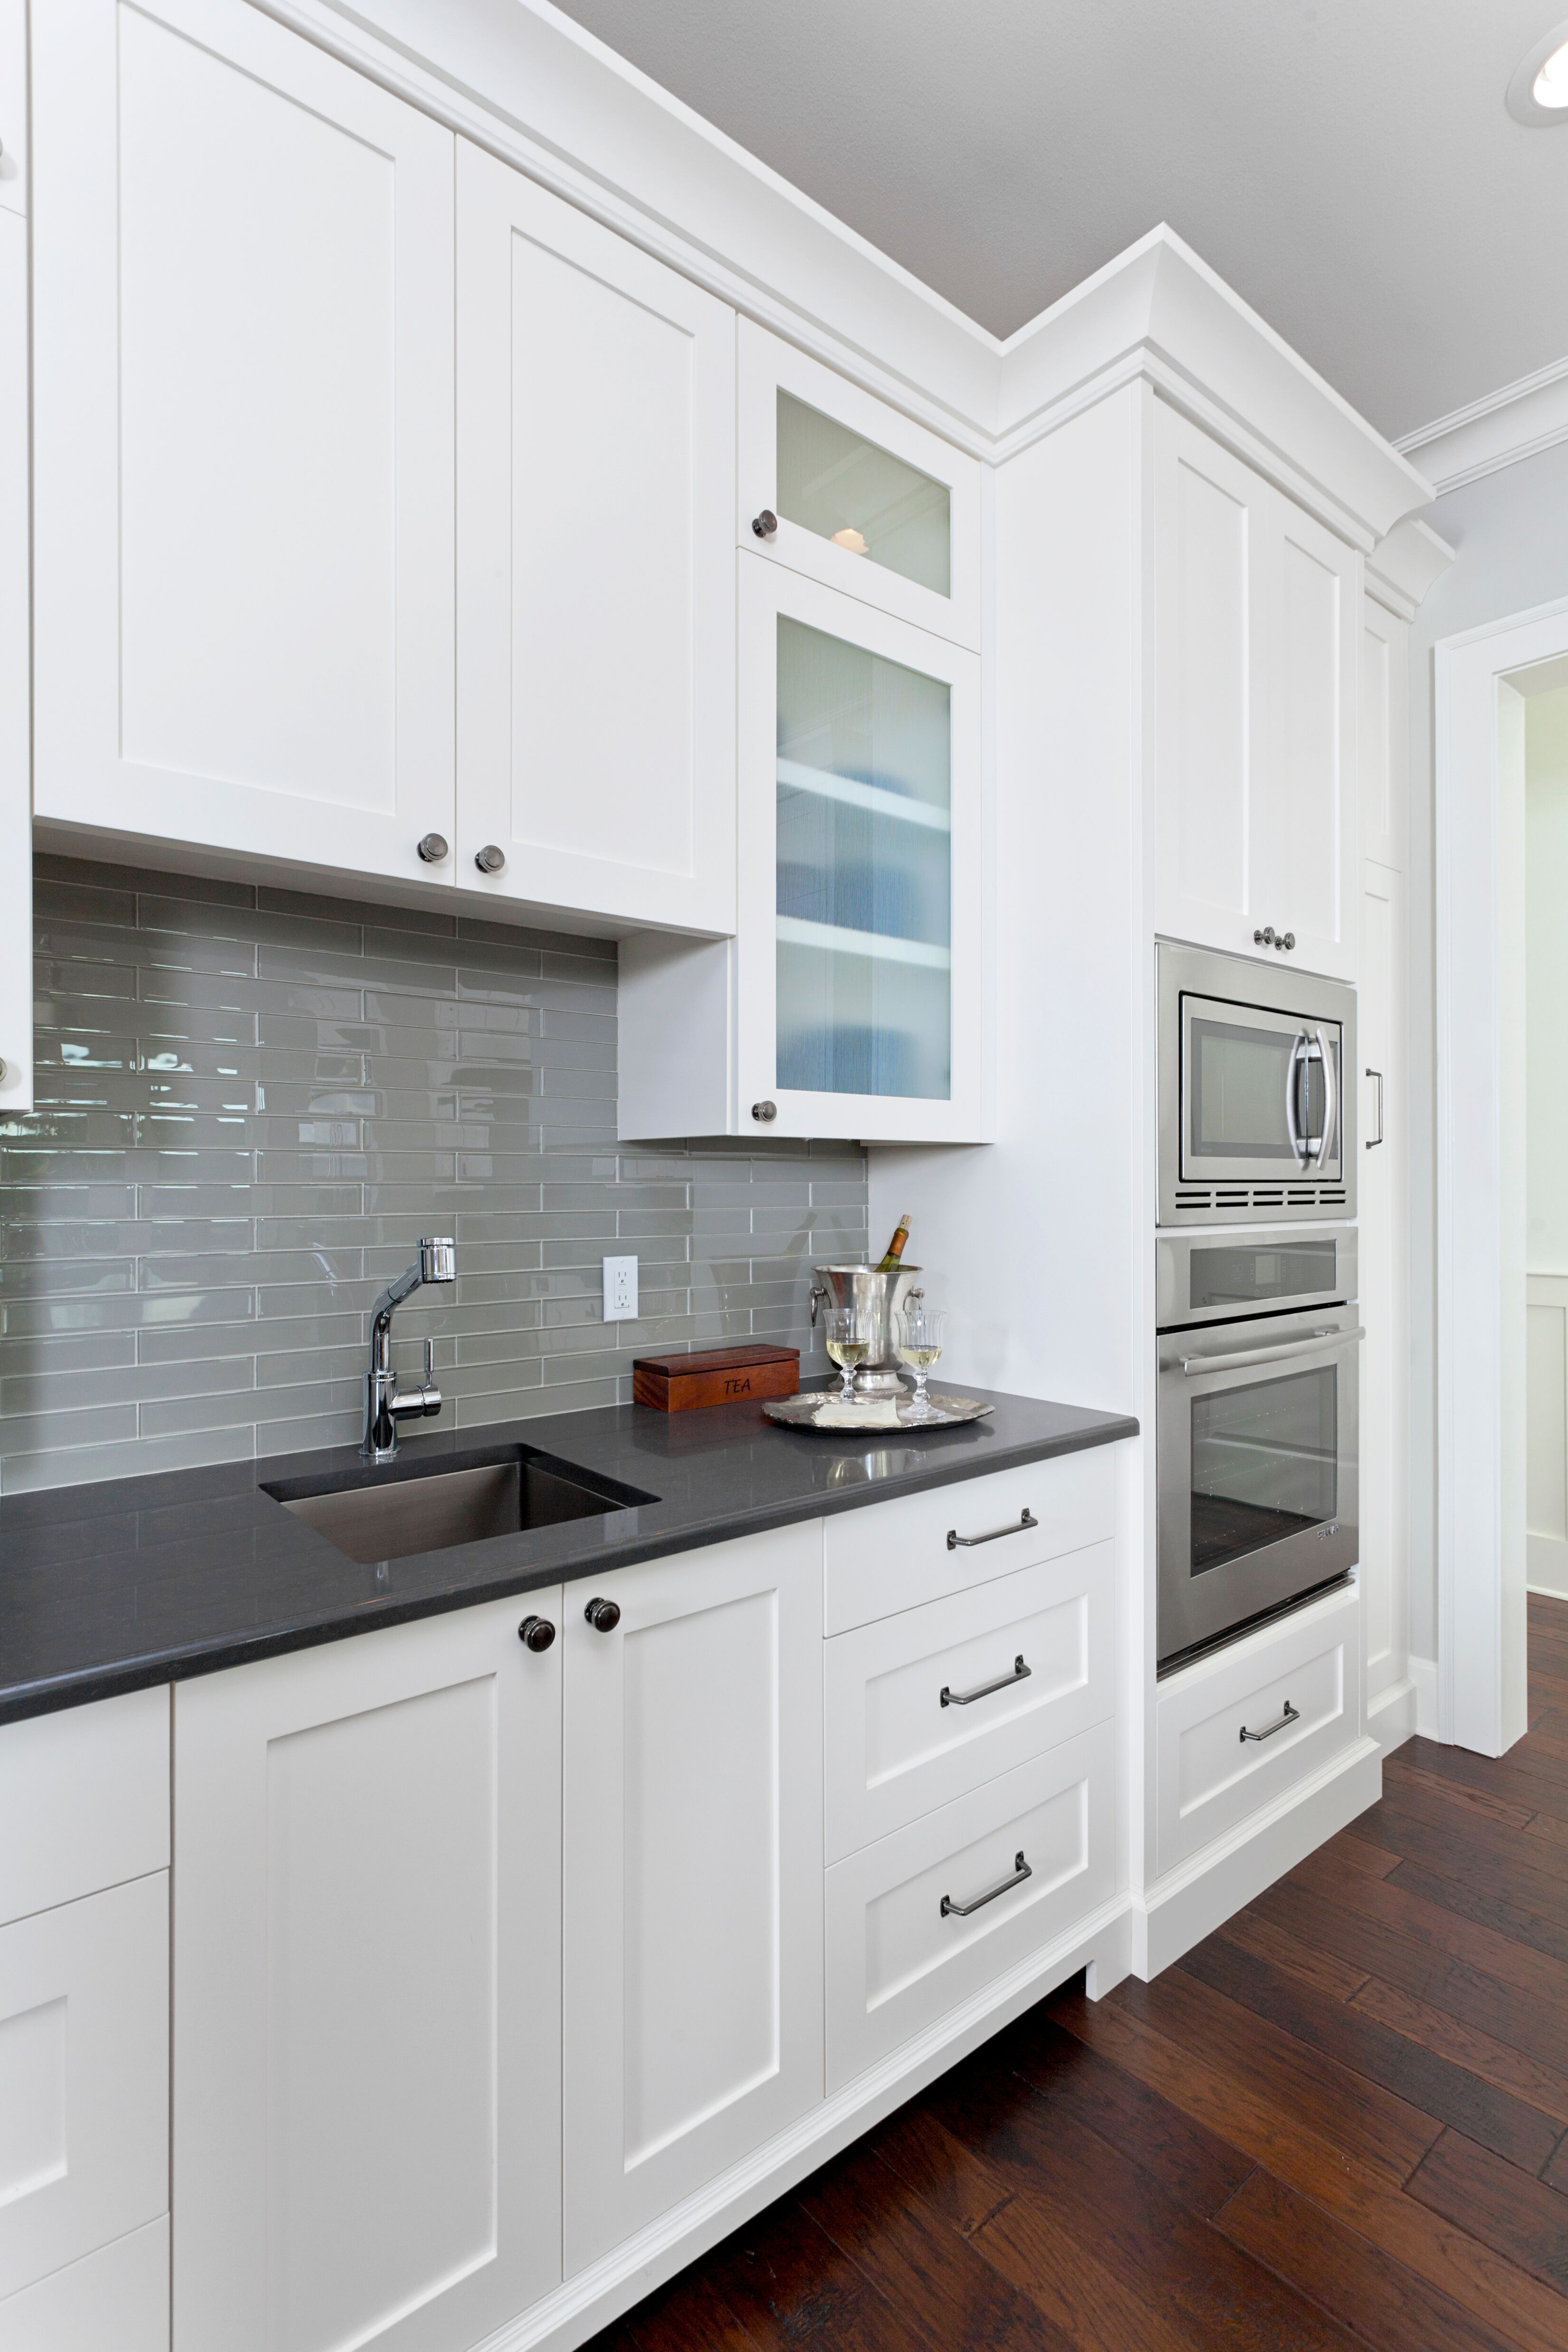 White Kitchen With Dark Counters And Grey Backsplash Designed By In Detail Interiors In Pensacola Fl Whit Kitchen Remodel Grey Backsplash Kitchen Design